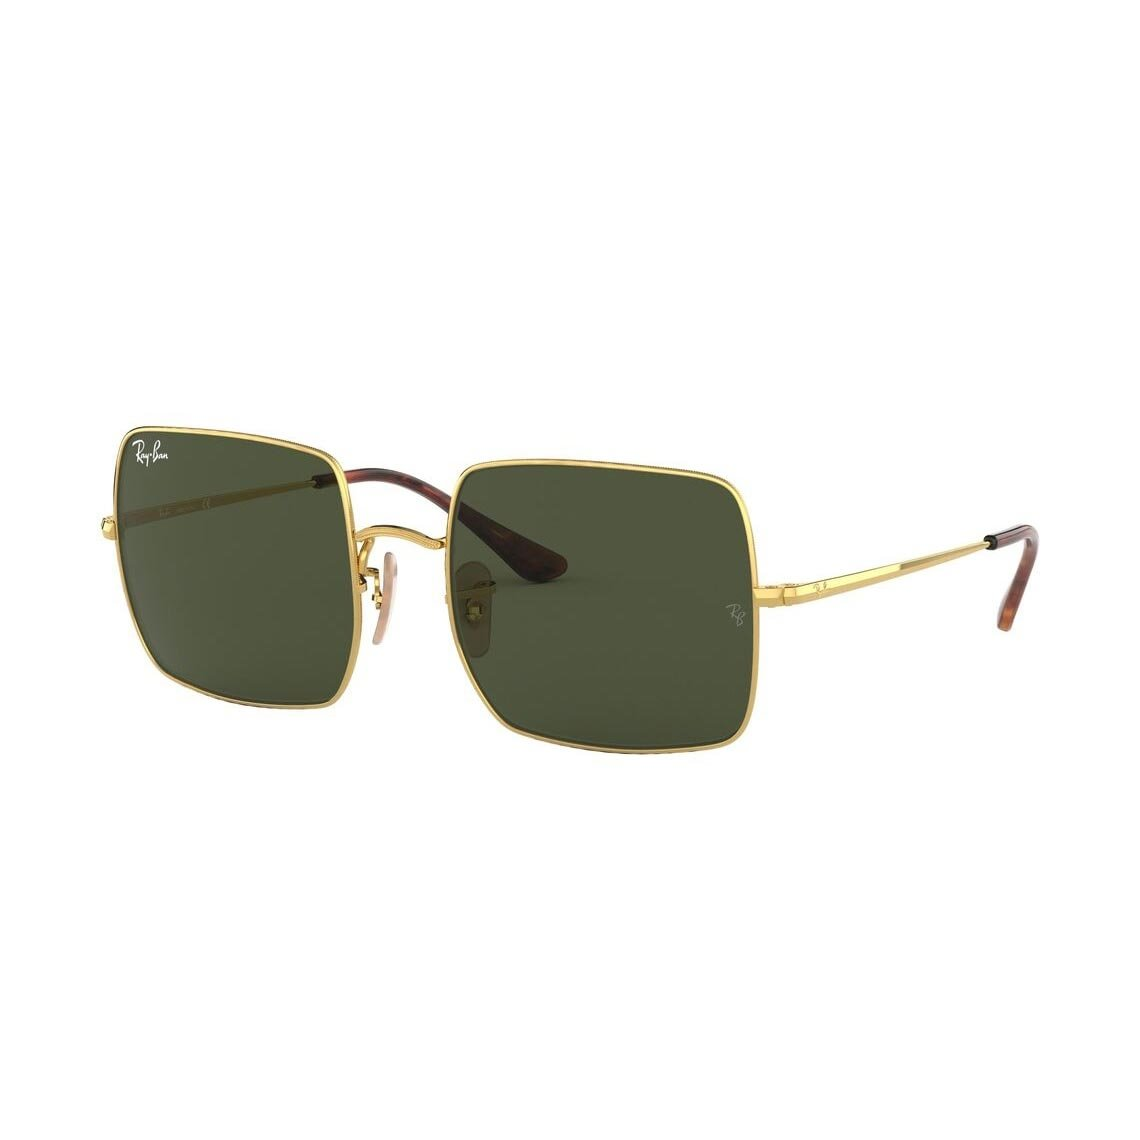 Ray-Ban Square 1971 Classic RB1971 914731 5419